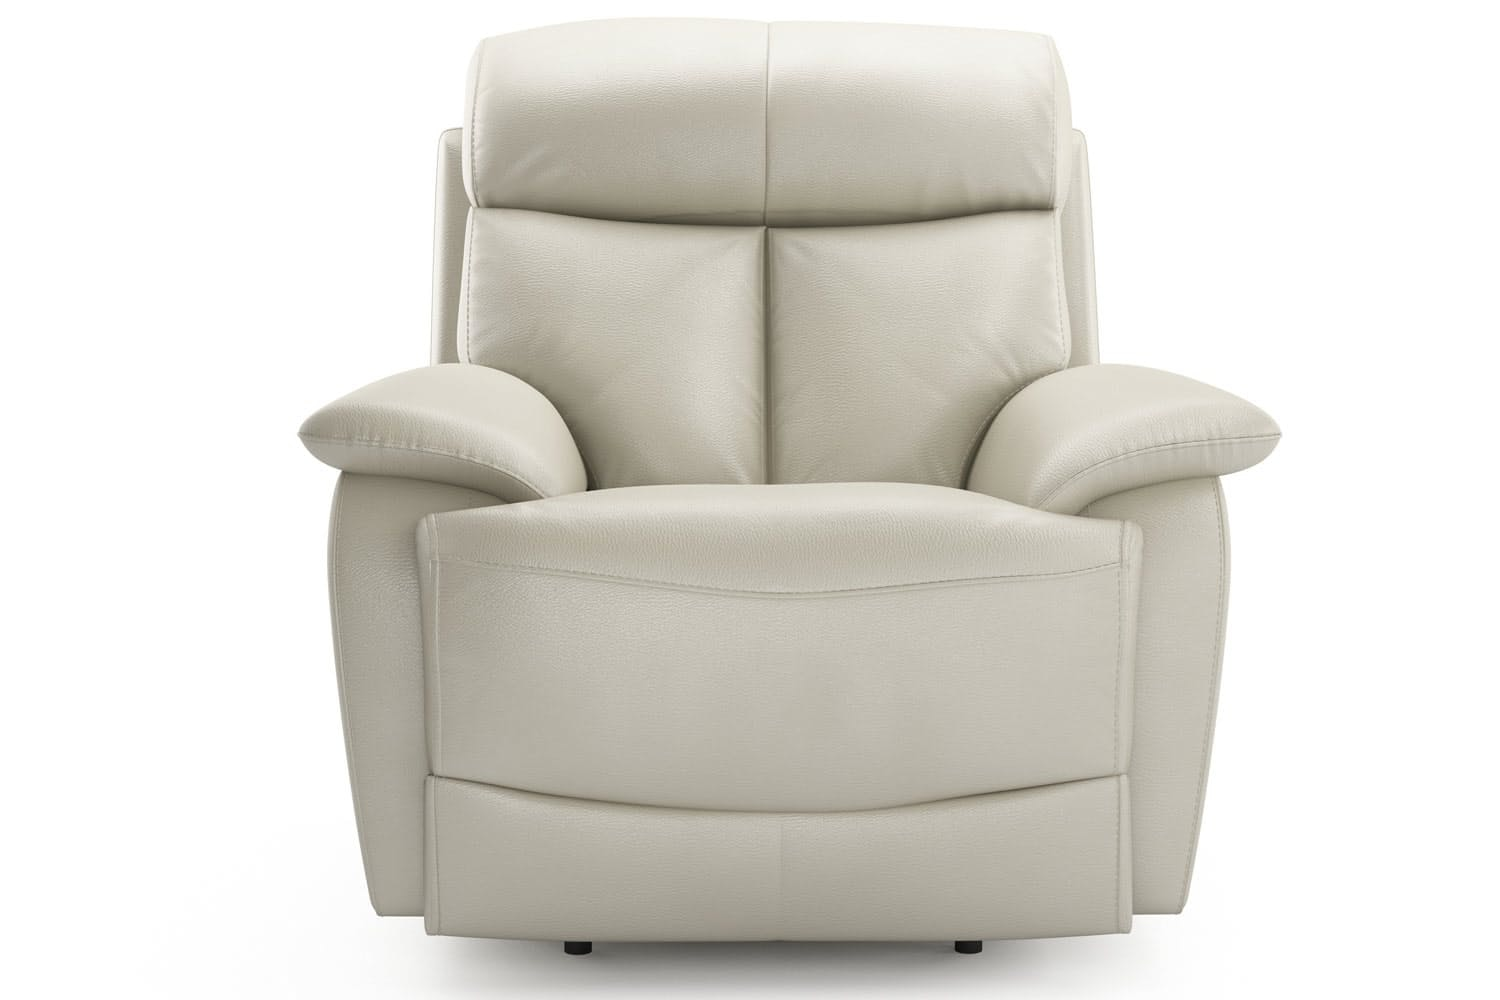 Seline Leather Recliner